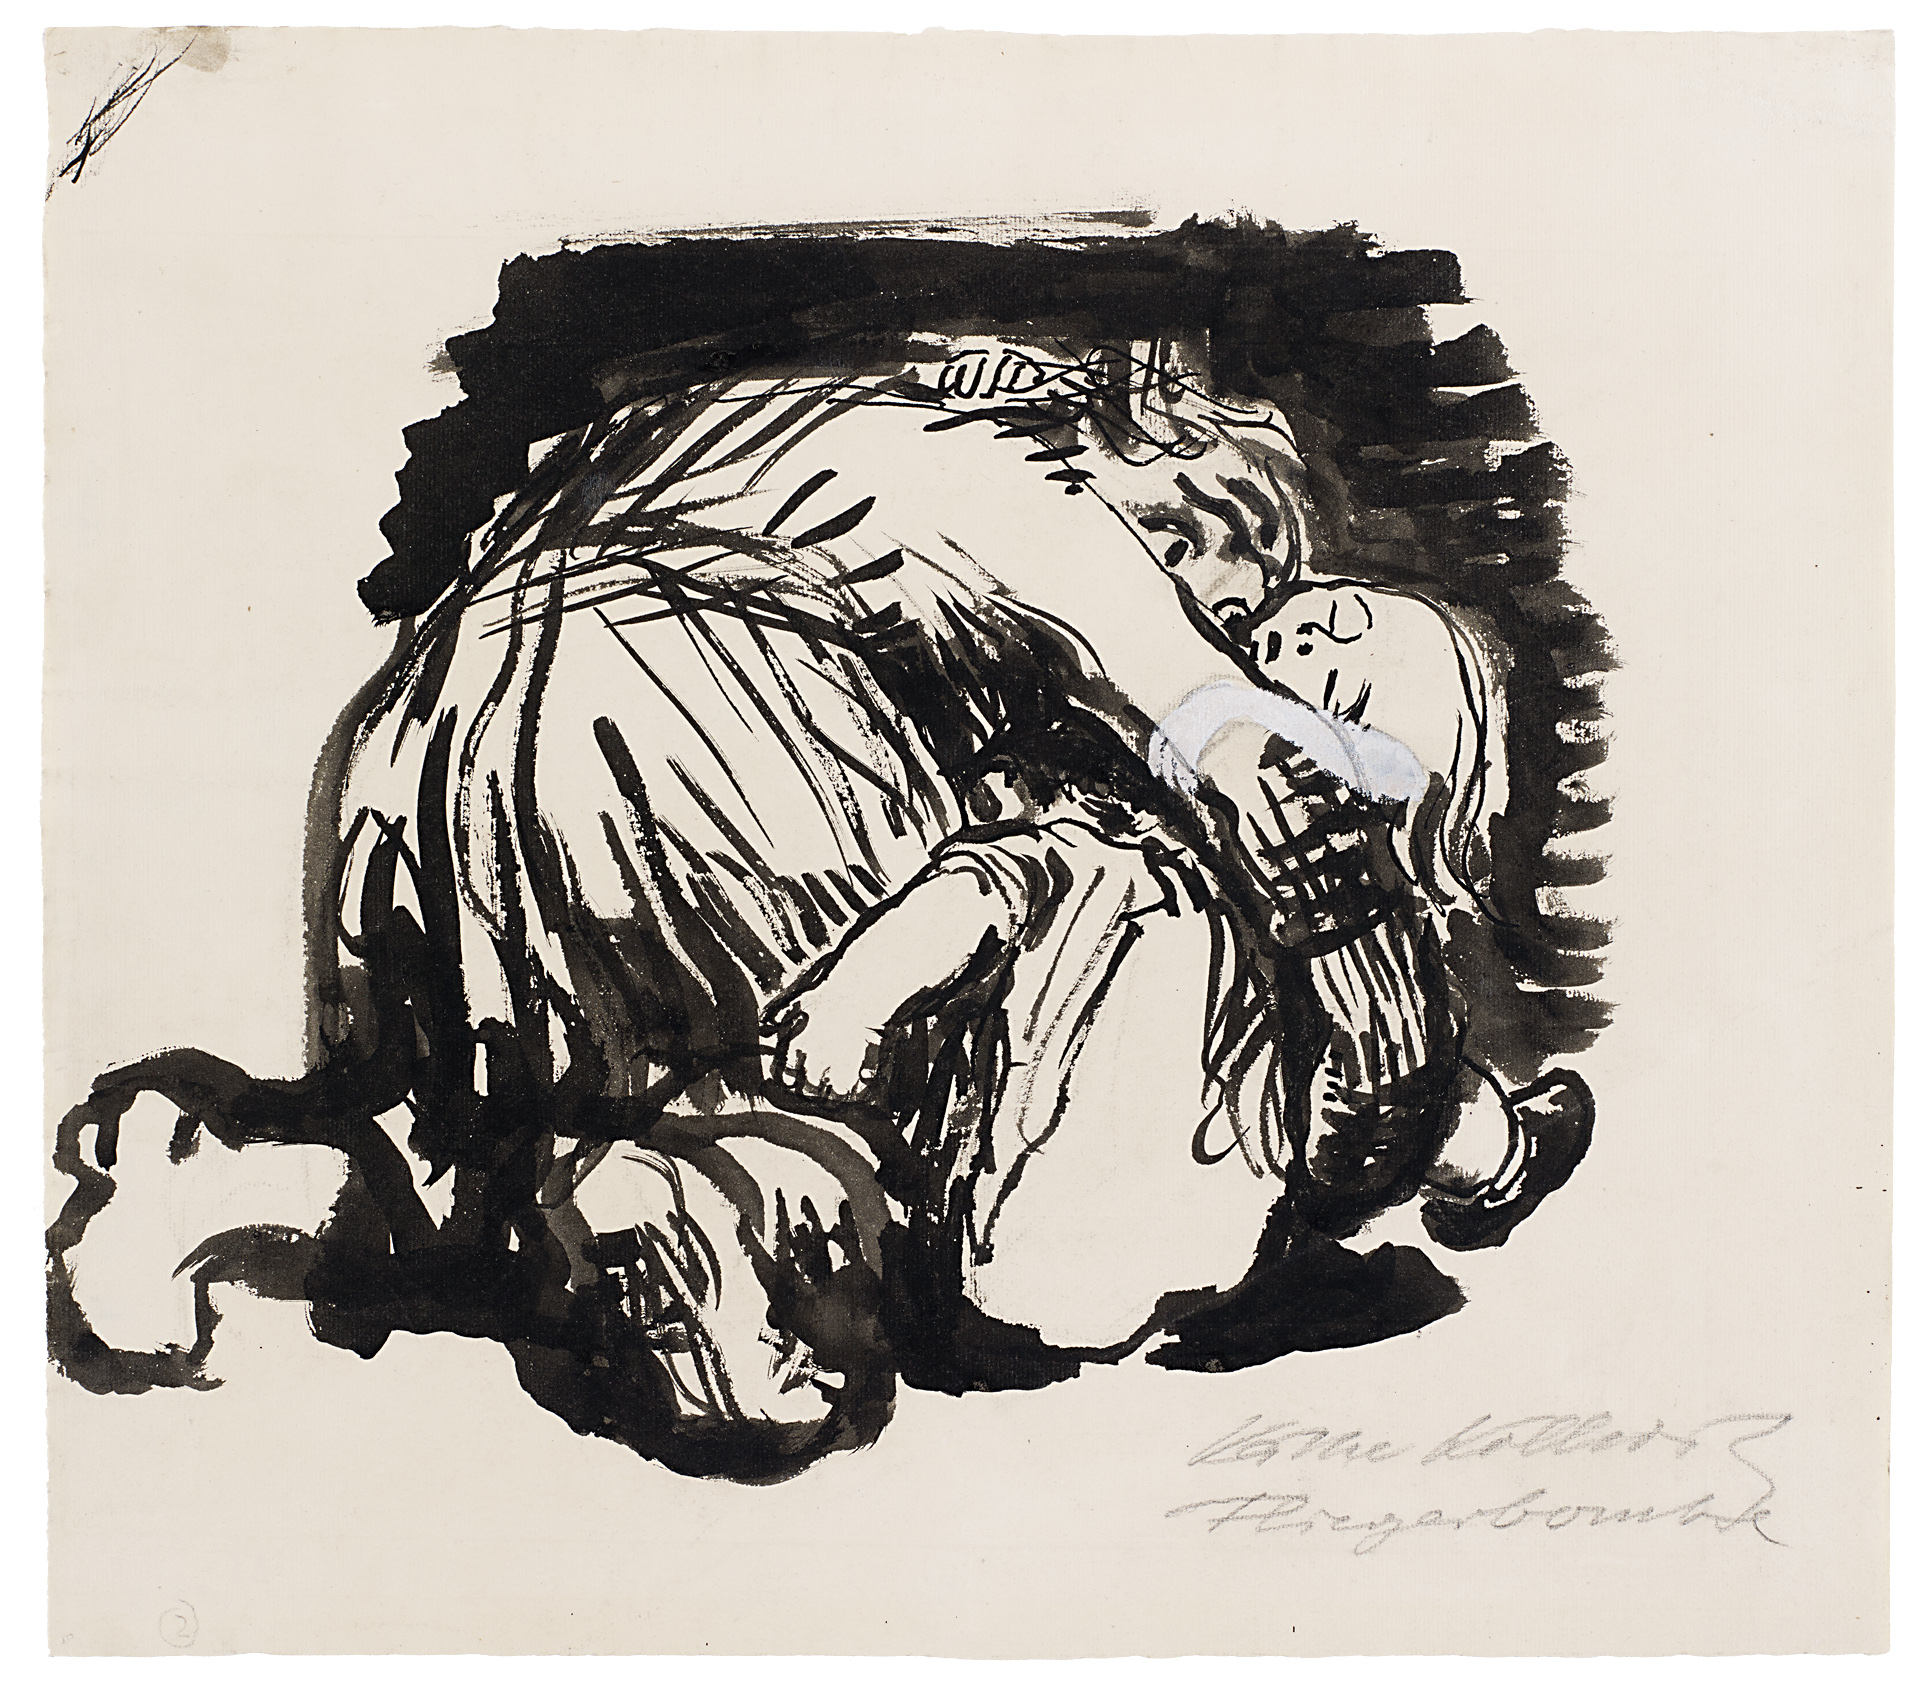 Käthe Kollwitz, Aerial Bomb, 1924/1925, brush and black ink, NT 960, Cologne Kollwitz Collection © Käthe Kollwitz Museum Köln